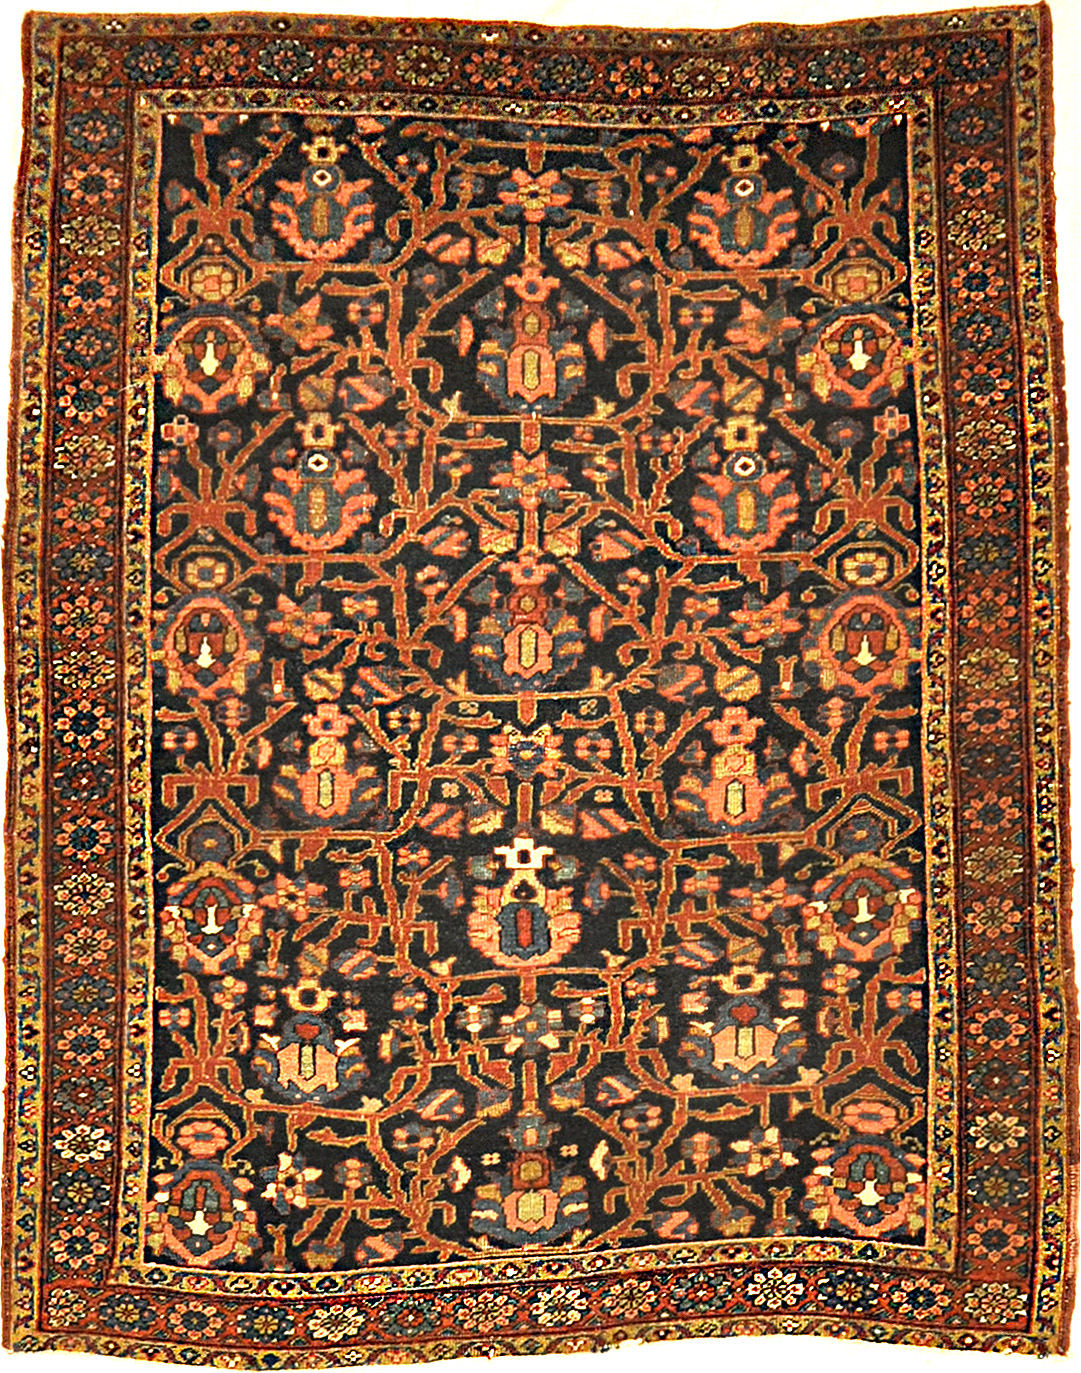 Antique Heriz Rug with a Unique Field. A piece of genuine authentic woven carpet art sold by the Santa Barbara Design Center, Rugs and More.